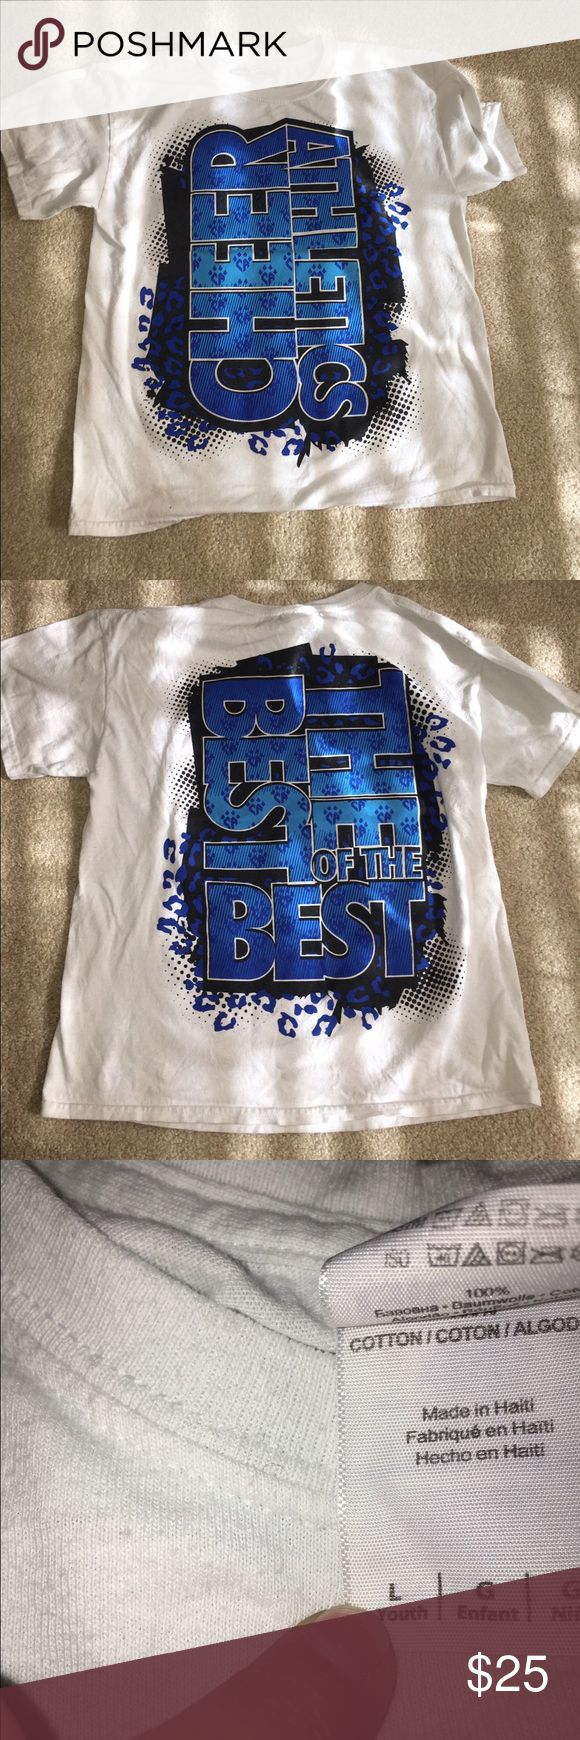 cheer athletics shirt CA shirt. great condition- only worn a few times. YL Other